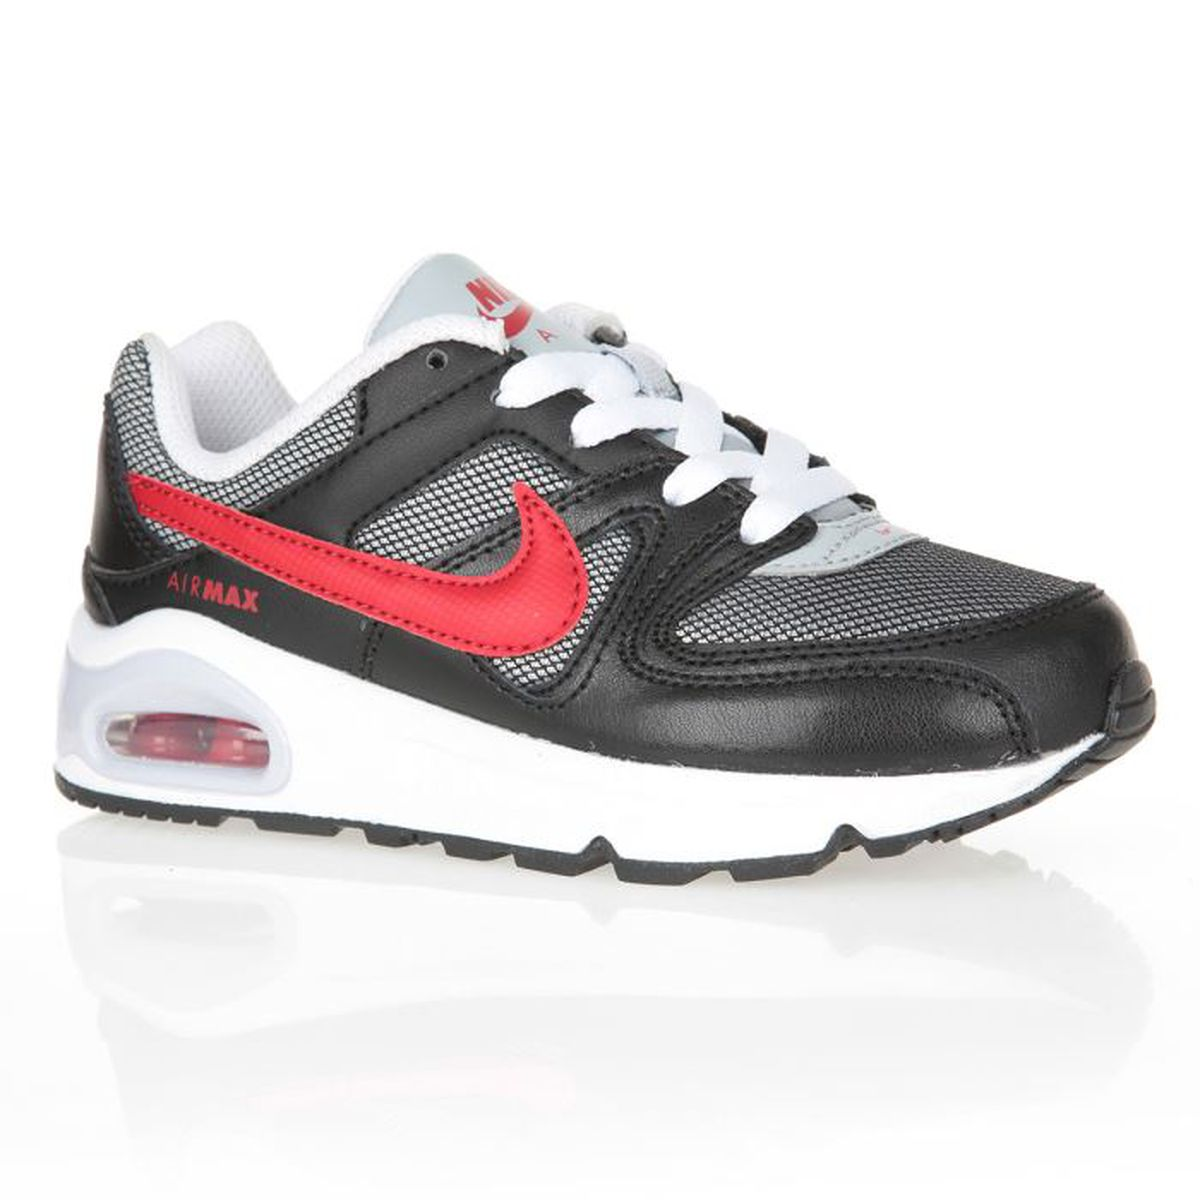 nike air max pas cher enfant. Black Bedroom Furniture Sets. Home Design Ideas